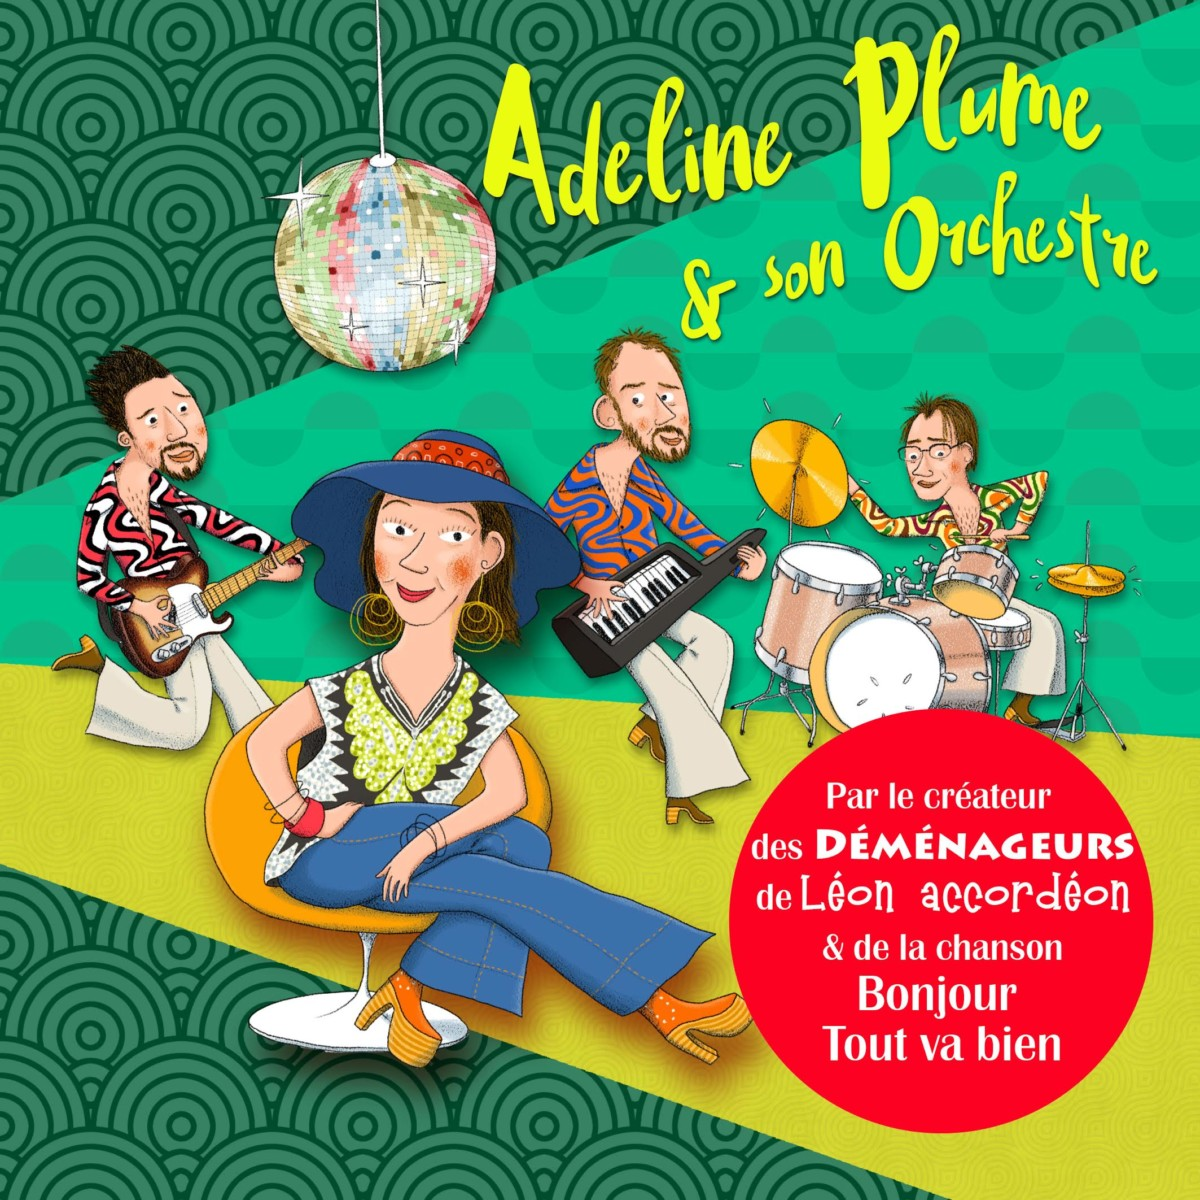 Adeline Plume et son orchestre (LIVRE-CD) - Team For Action f6e3154a160